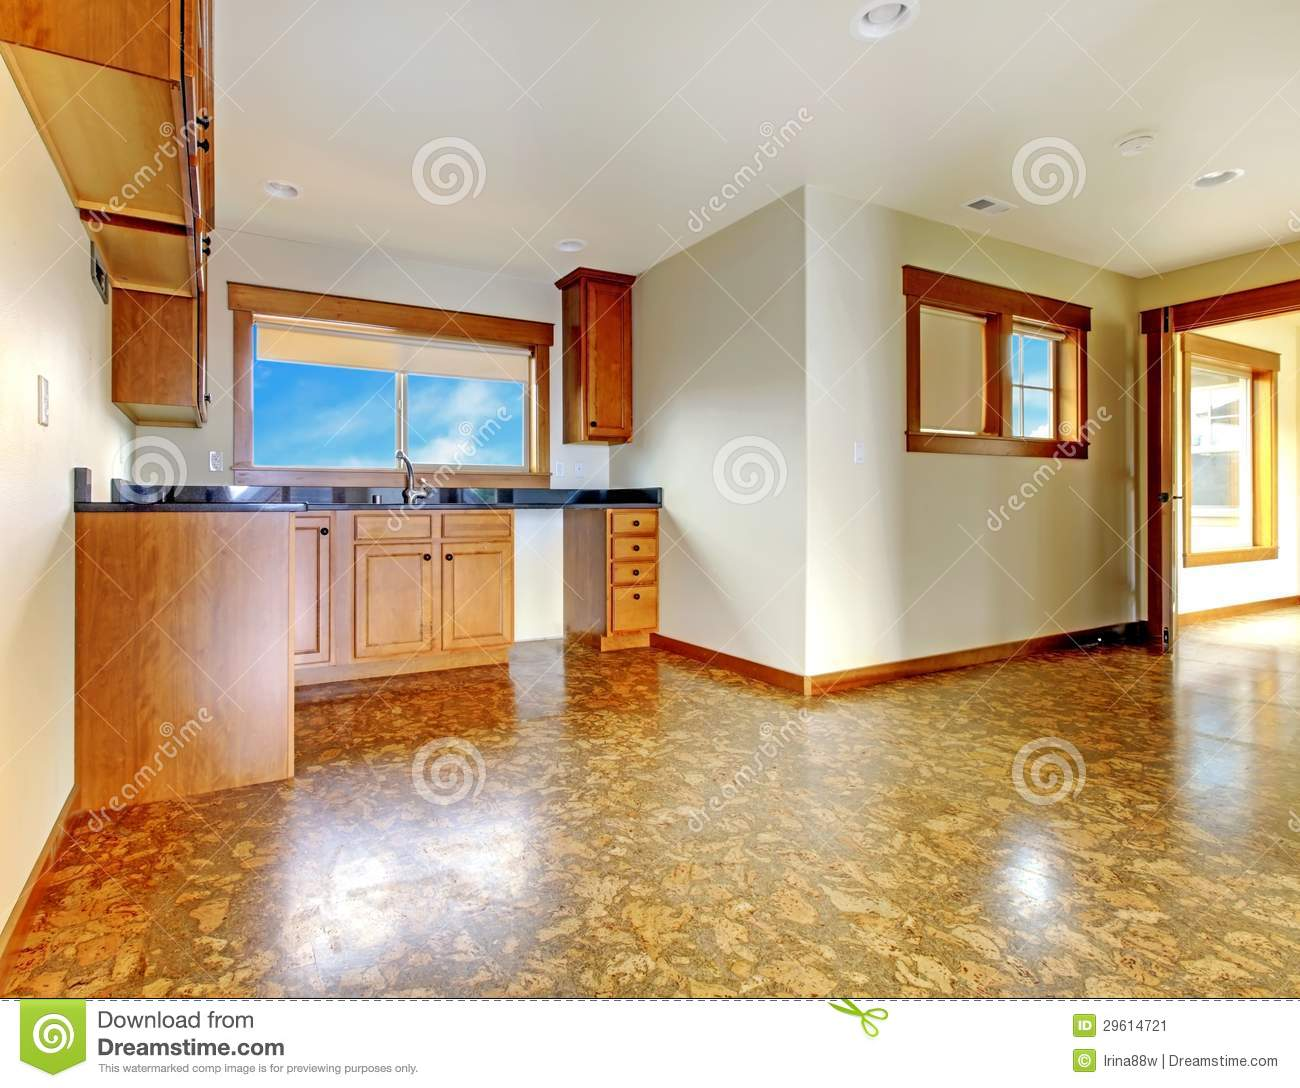 Small Kitche In Mother In Low Apartment New Luxury Home